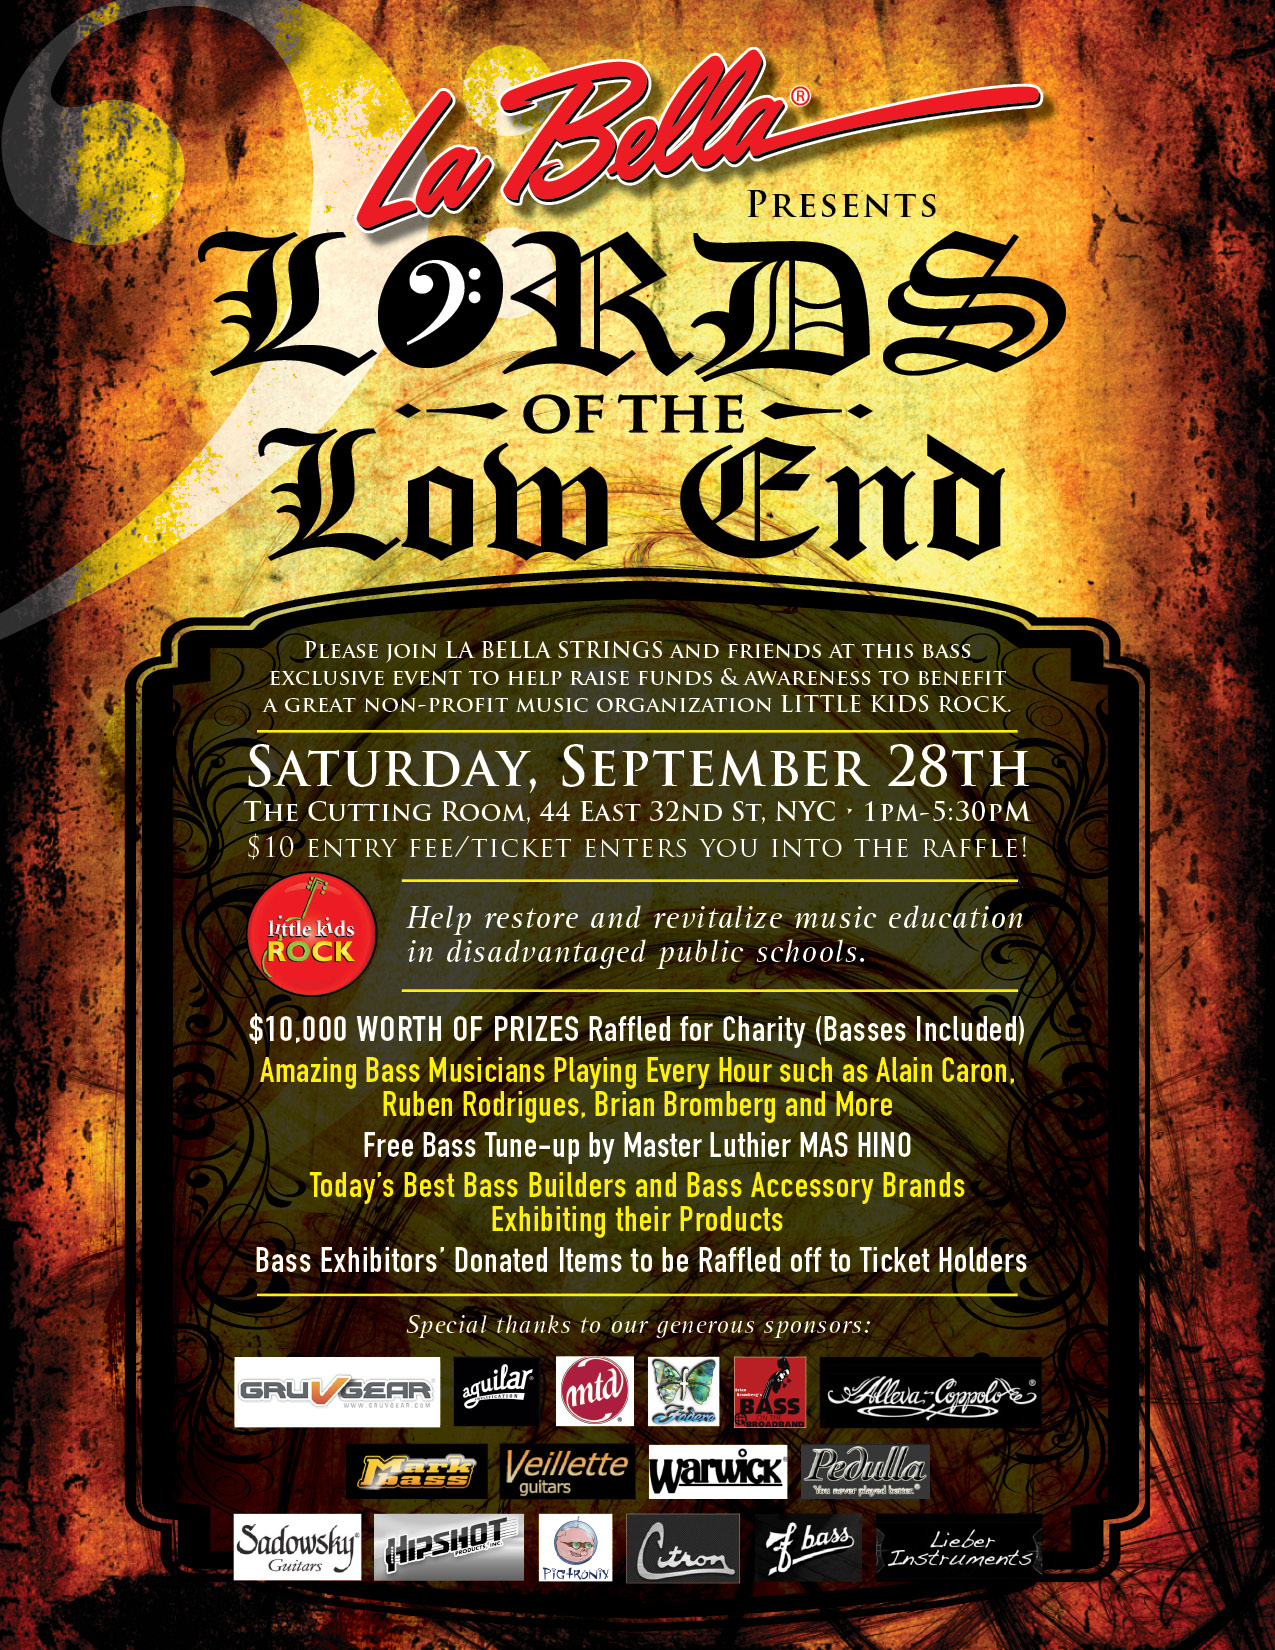 Lords Of The Low End Poster